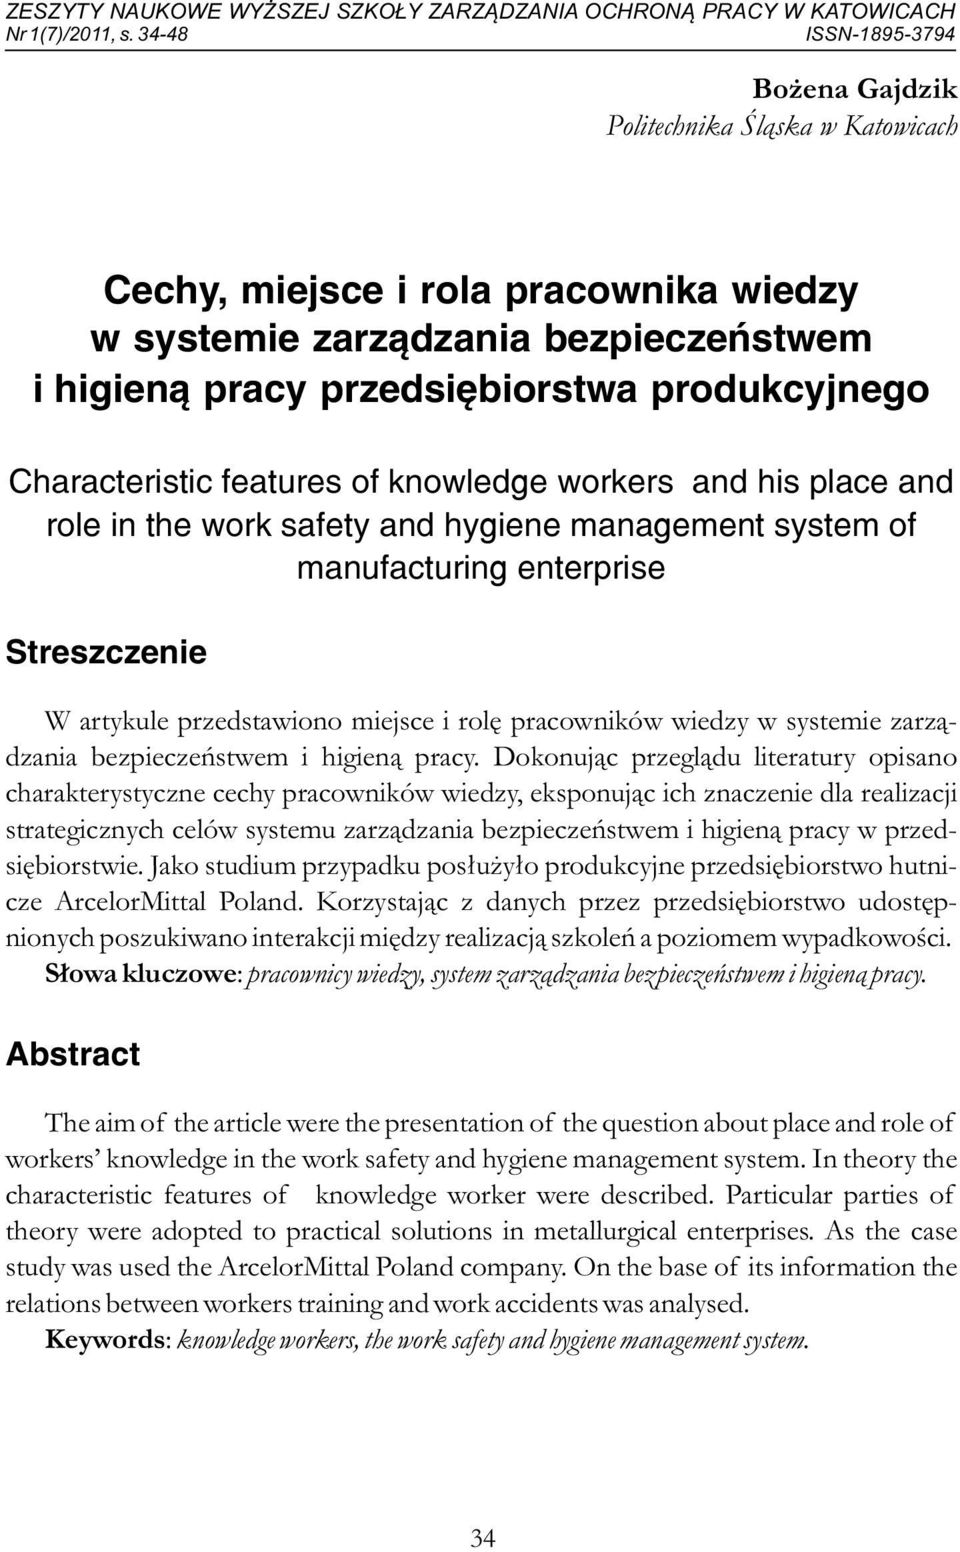 Characteristic features of knowledge workers and his place and role in the work safety and hygiene management system of manufacturing enterprise Streszczenie W artykule przedstawiono miejsce i rolę